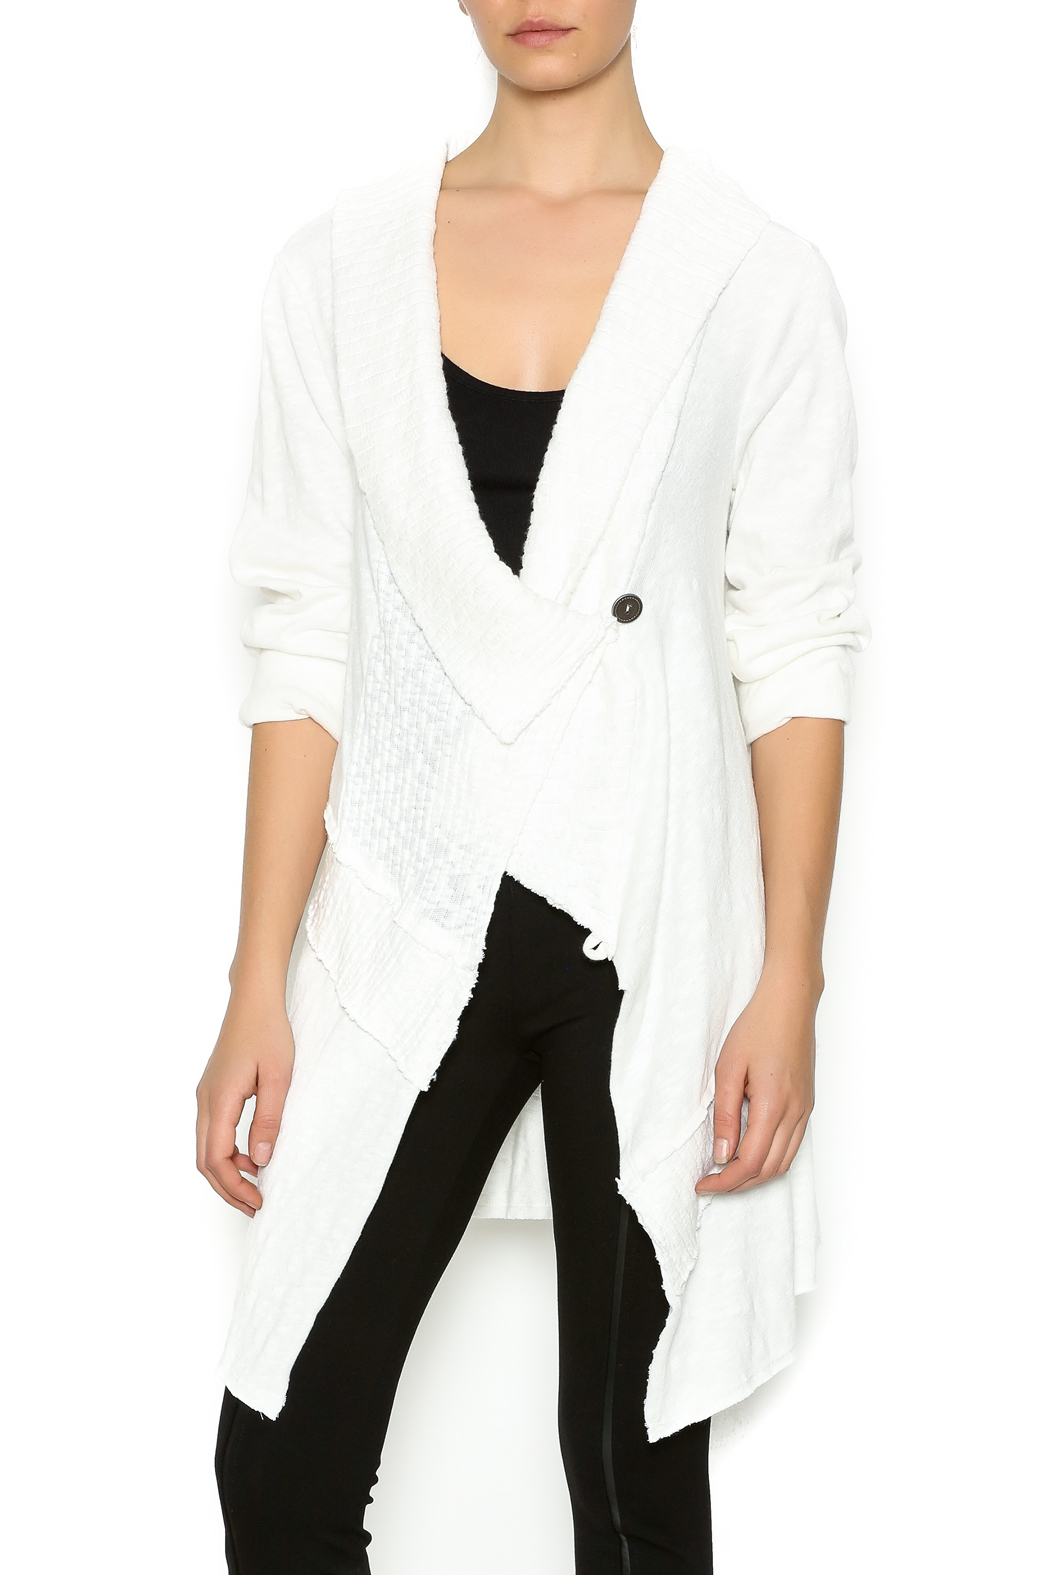 Chalet Asymmetric Winter White Sweater from Minnesota by Dot ...